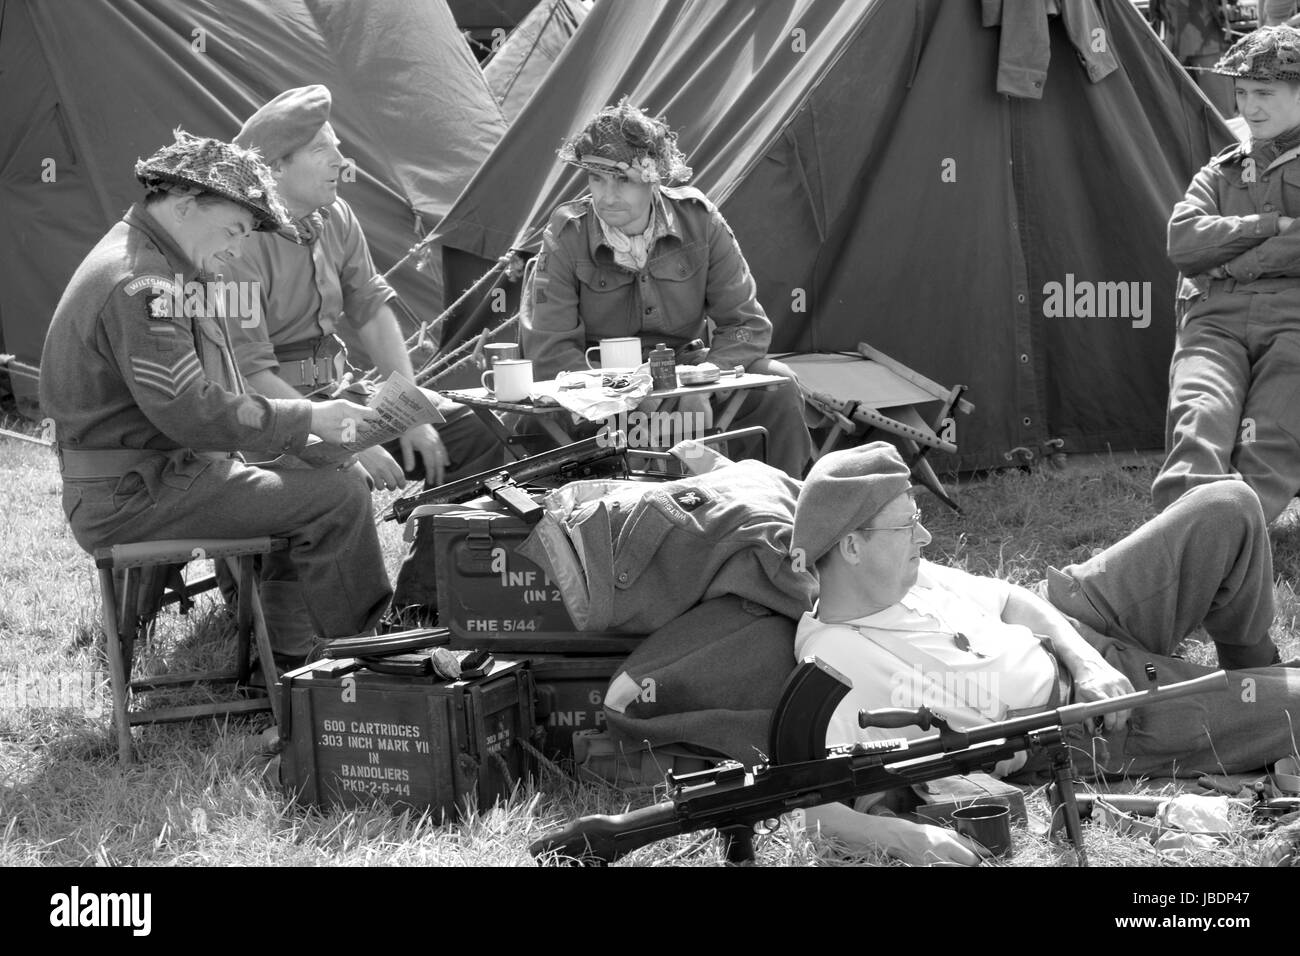 10th June 2017 - War and peace show at Wraxall in North Somerset.Engalnd. - Stock Image